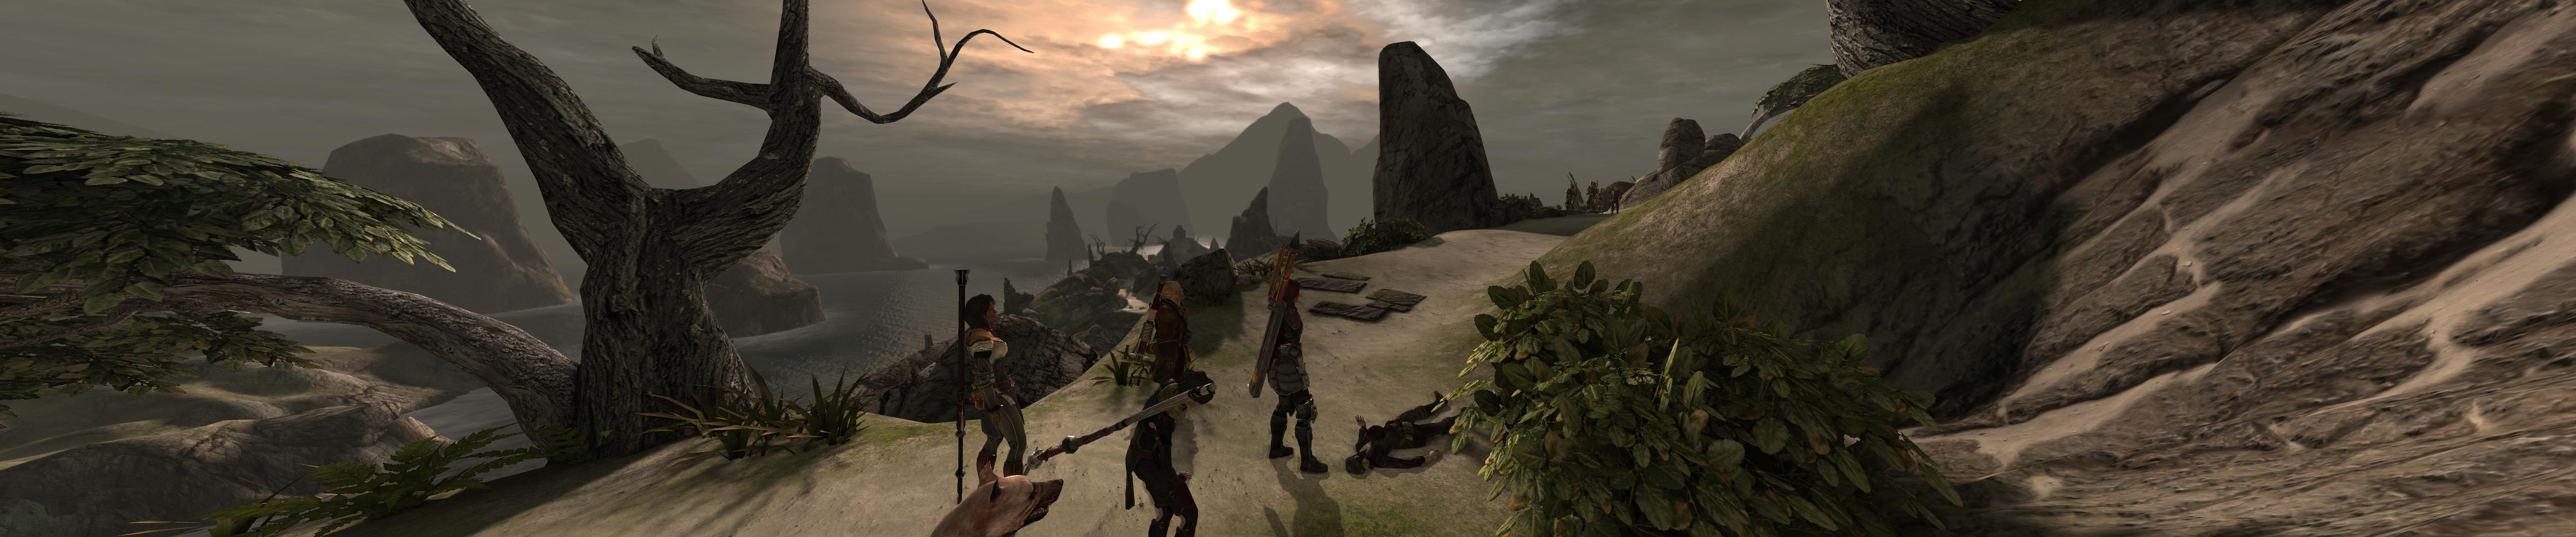 dragonage2-2011-04-16-03-44-04-57